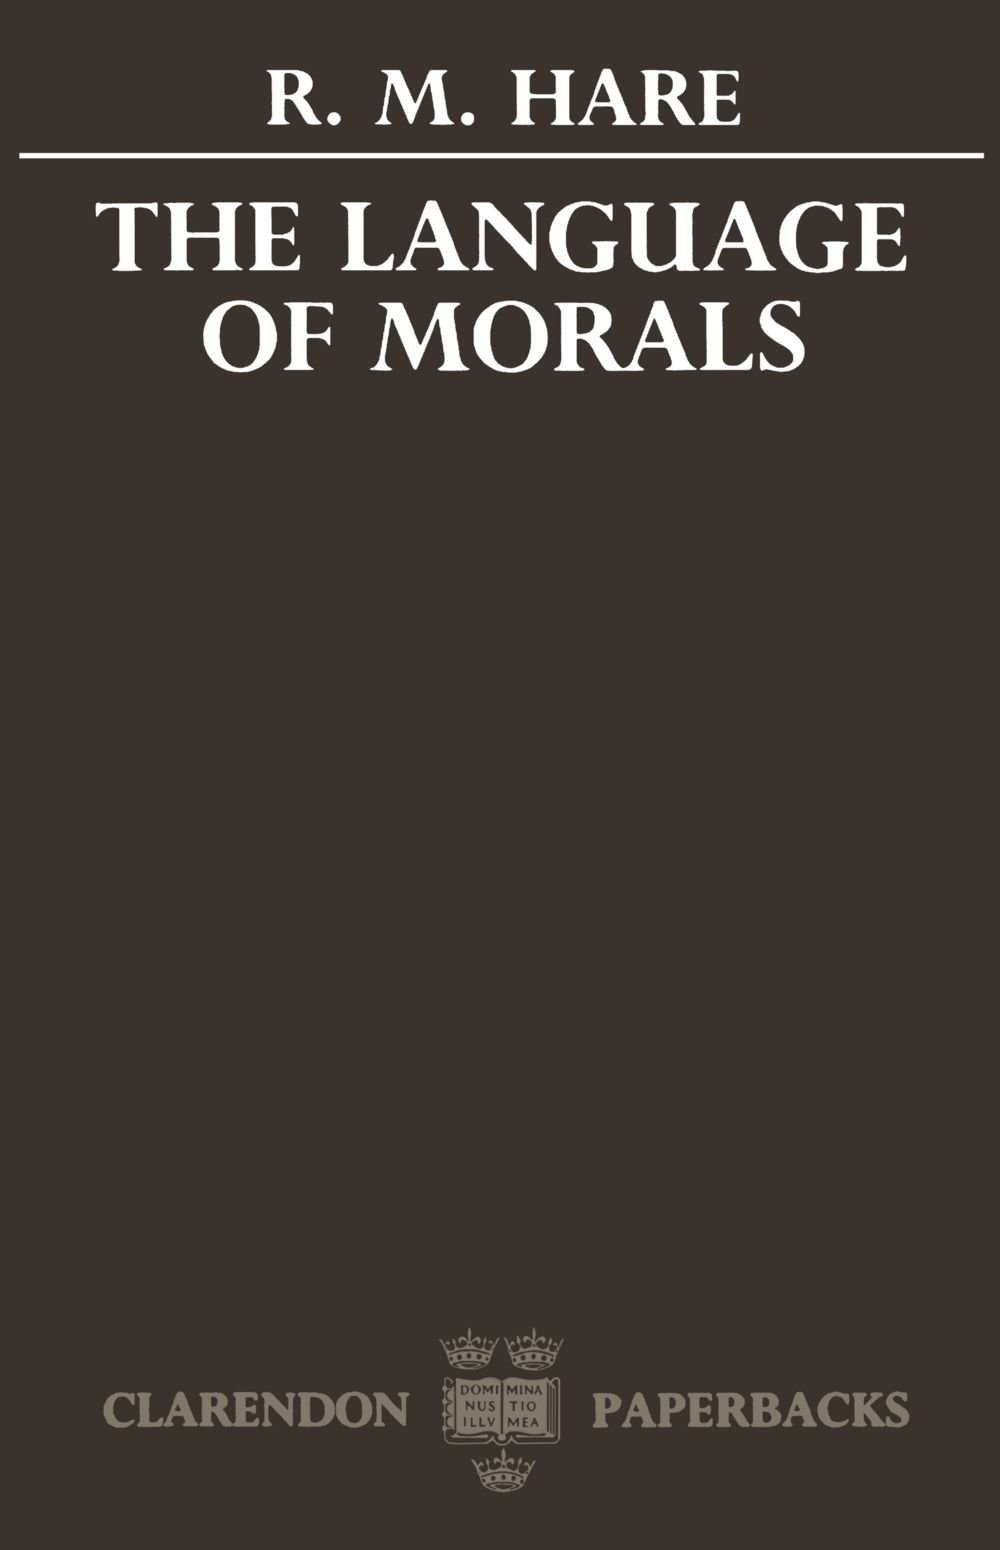 The Language of Morals (Oxford Paperbacks) by Oxford University Press